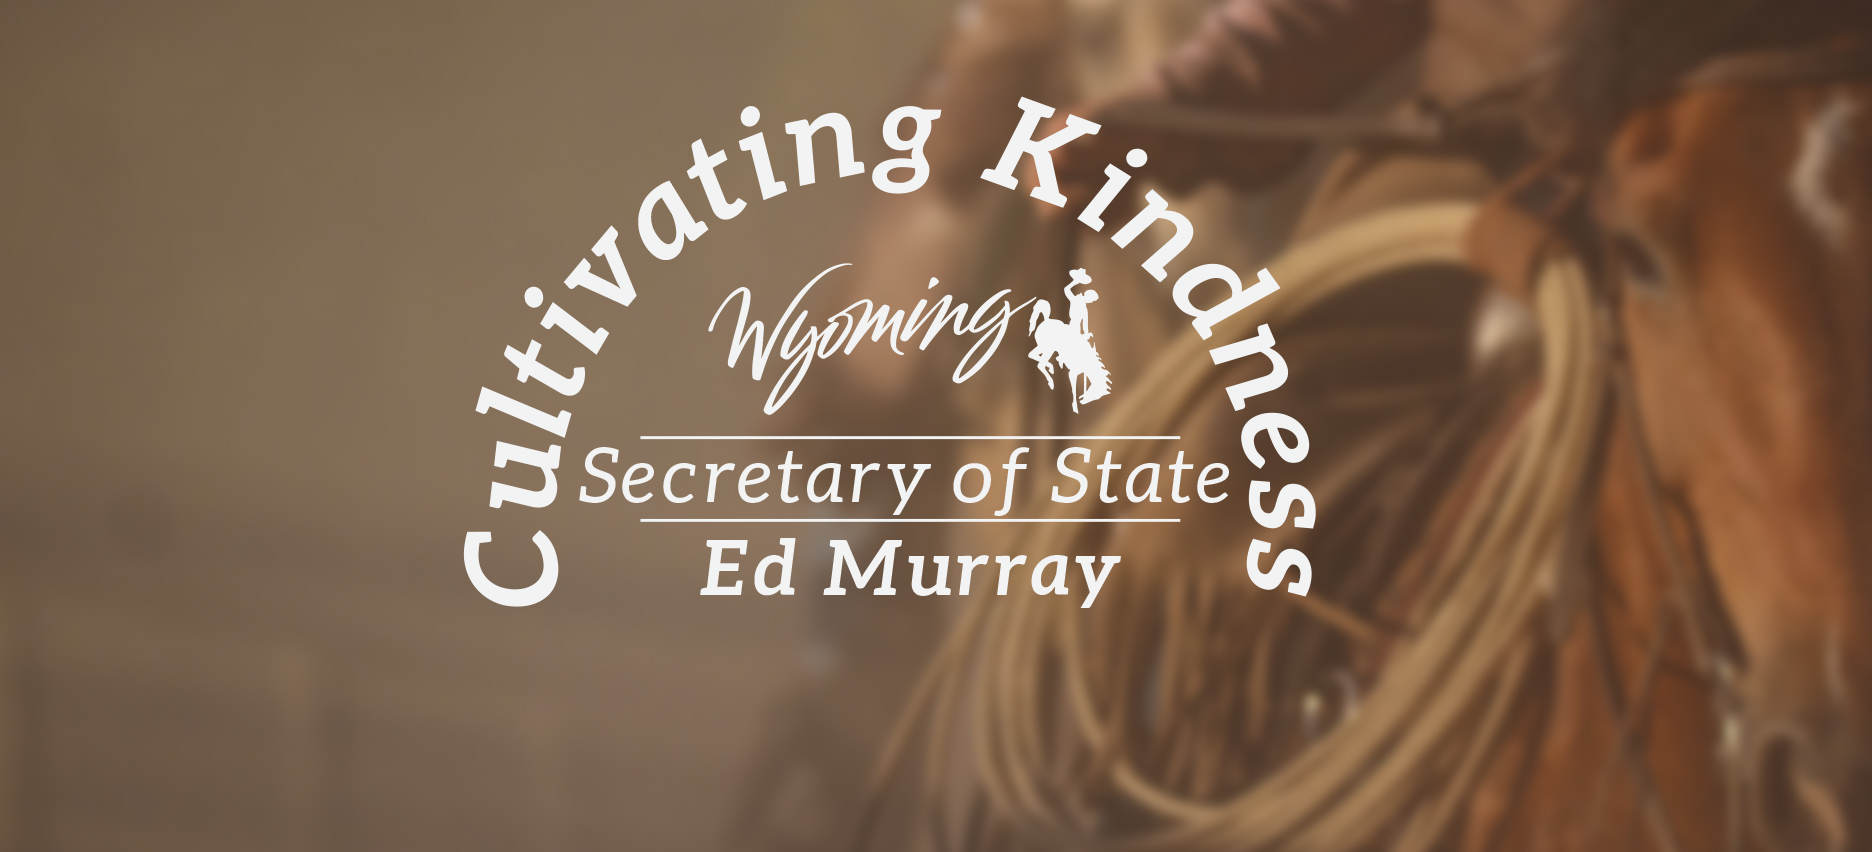 Wyoming Secretary of State's Office Participates in Kindness Wyoming